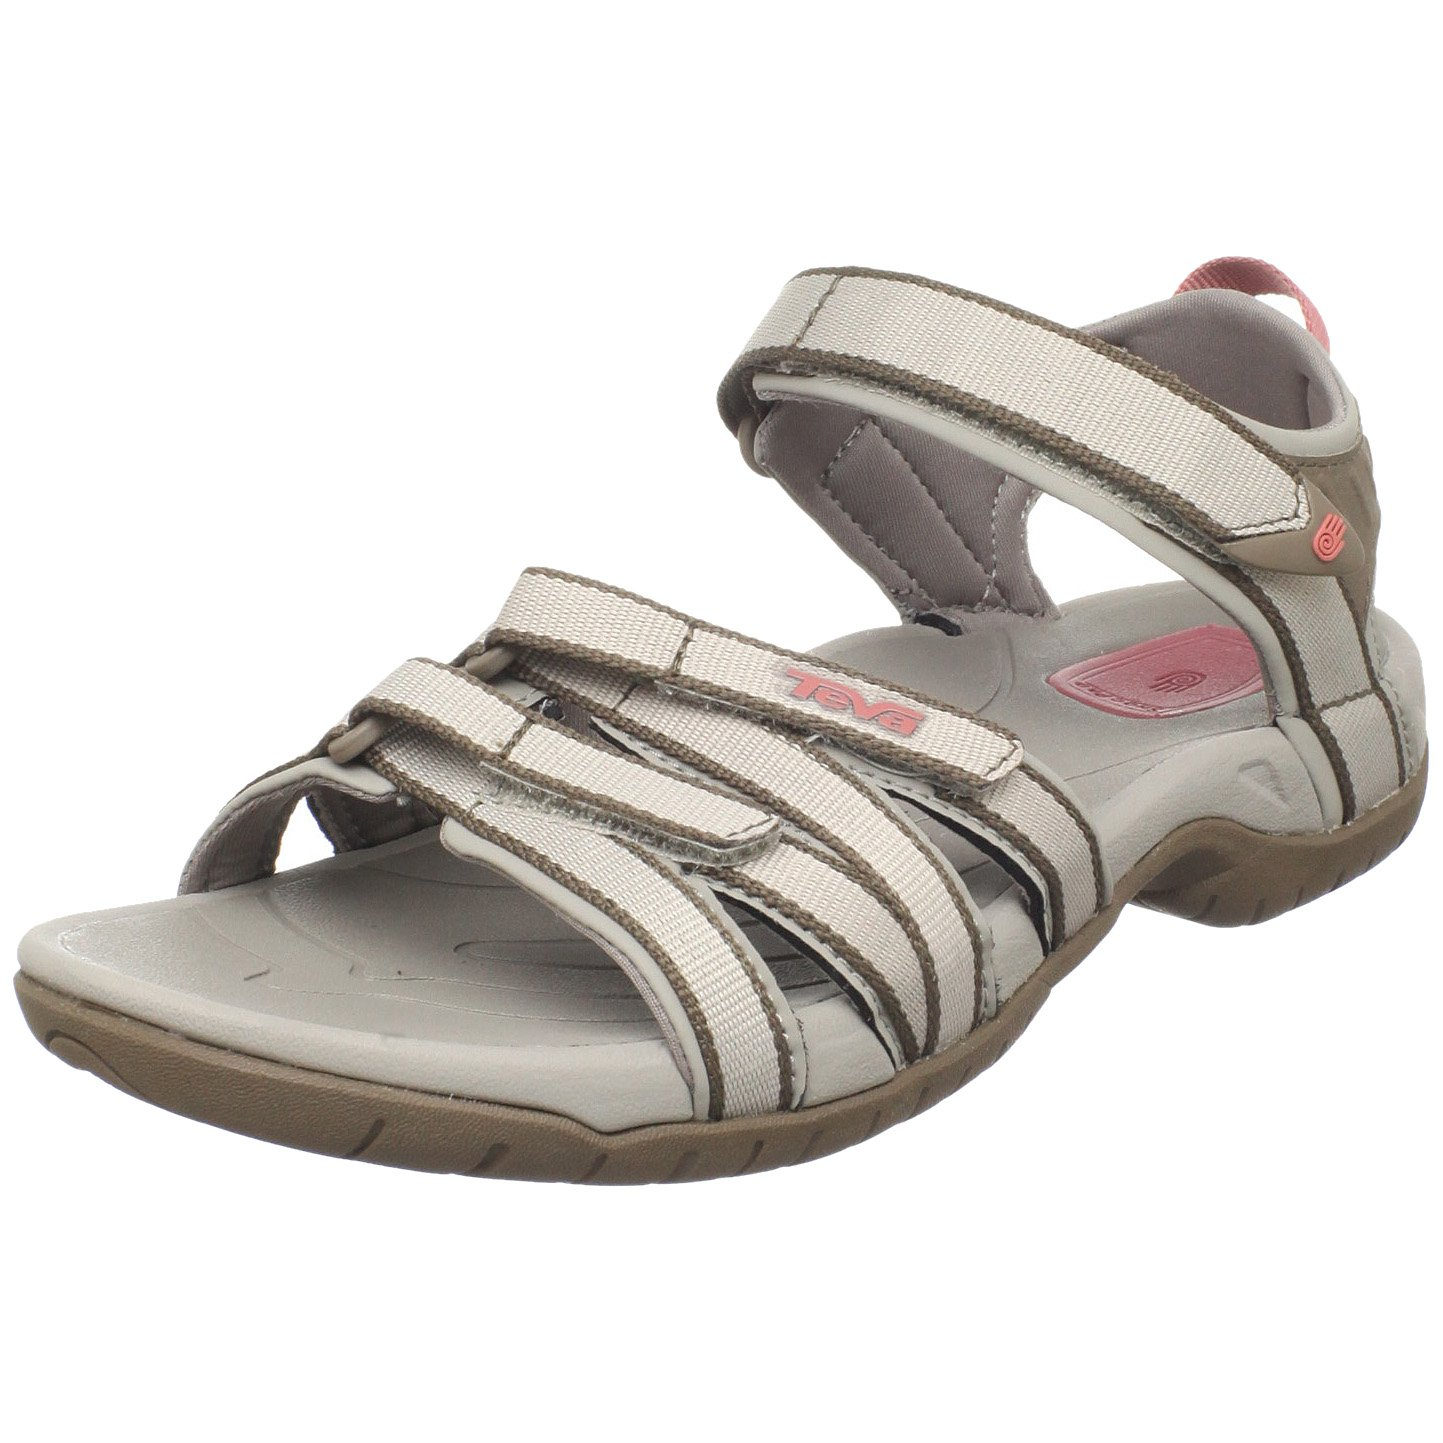 Teva Women's Tirra Athletic Sandal B003VPA498 8 B(M) US|Simply Taupe